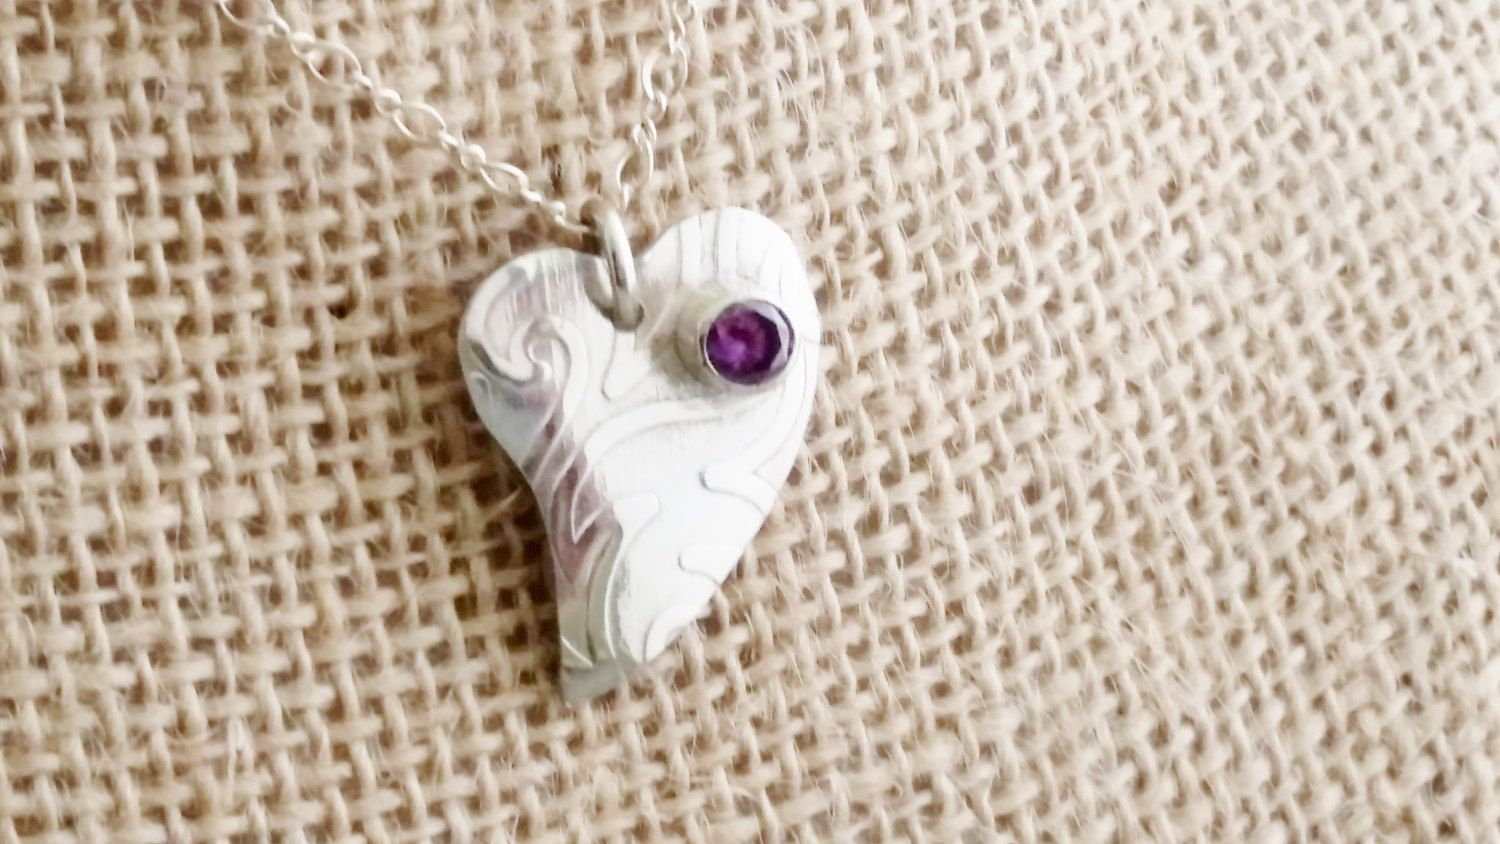 Argentium Silver and Amethyst Heart Pendant by DKHandcraftedJewelry on Etsy